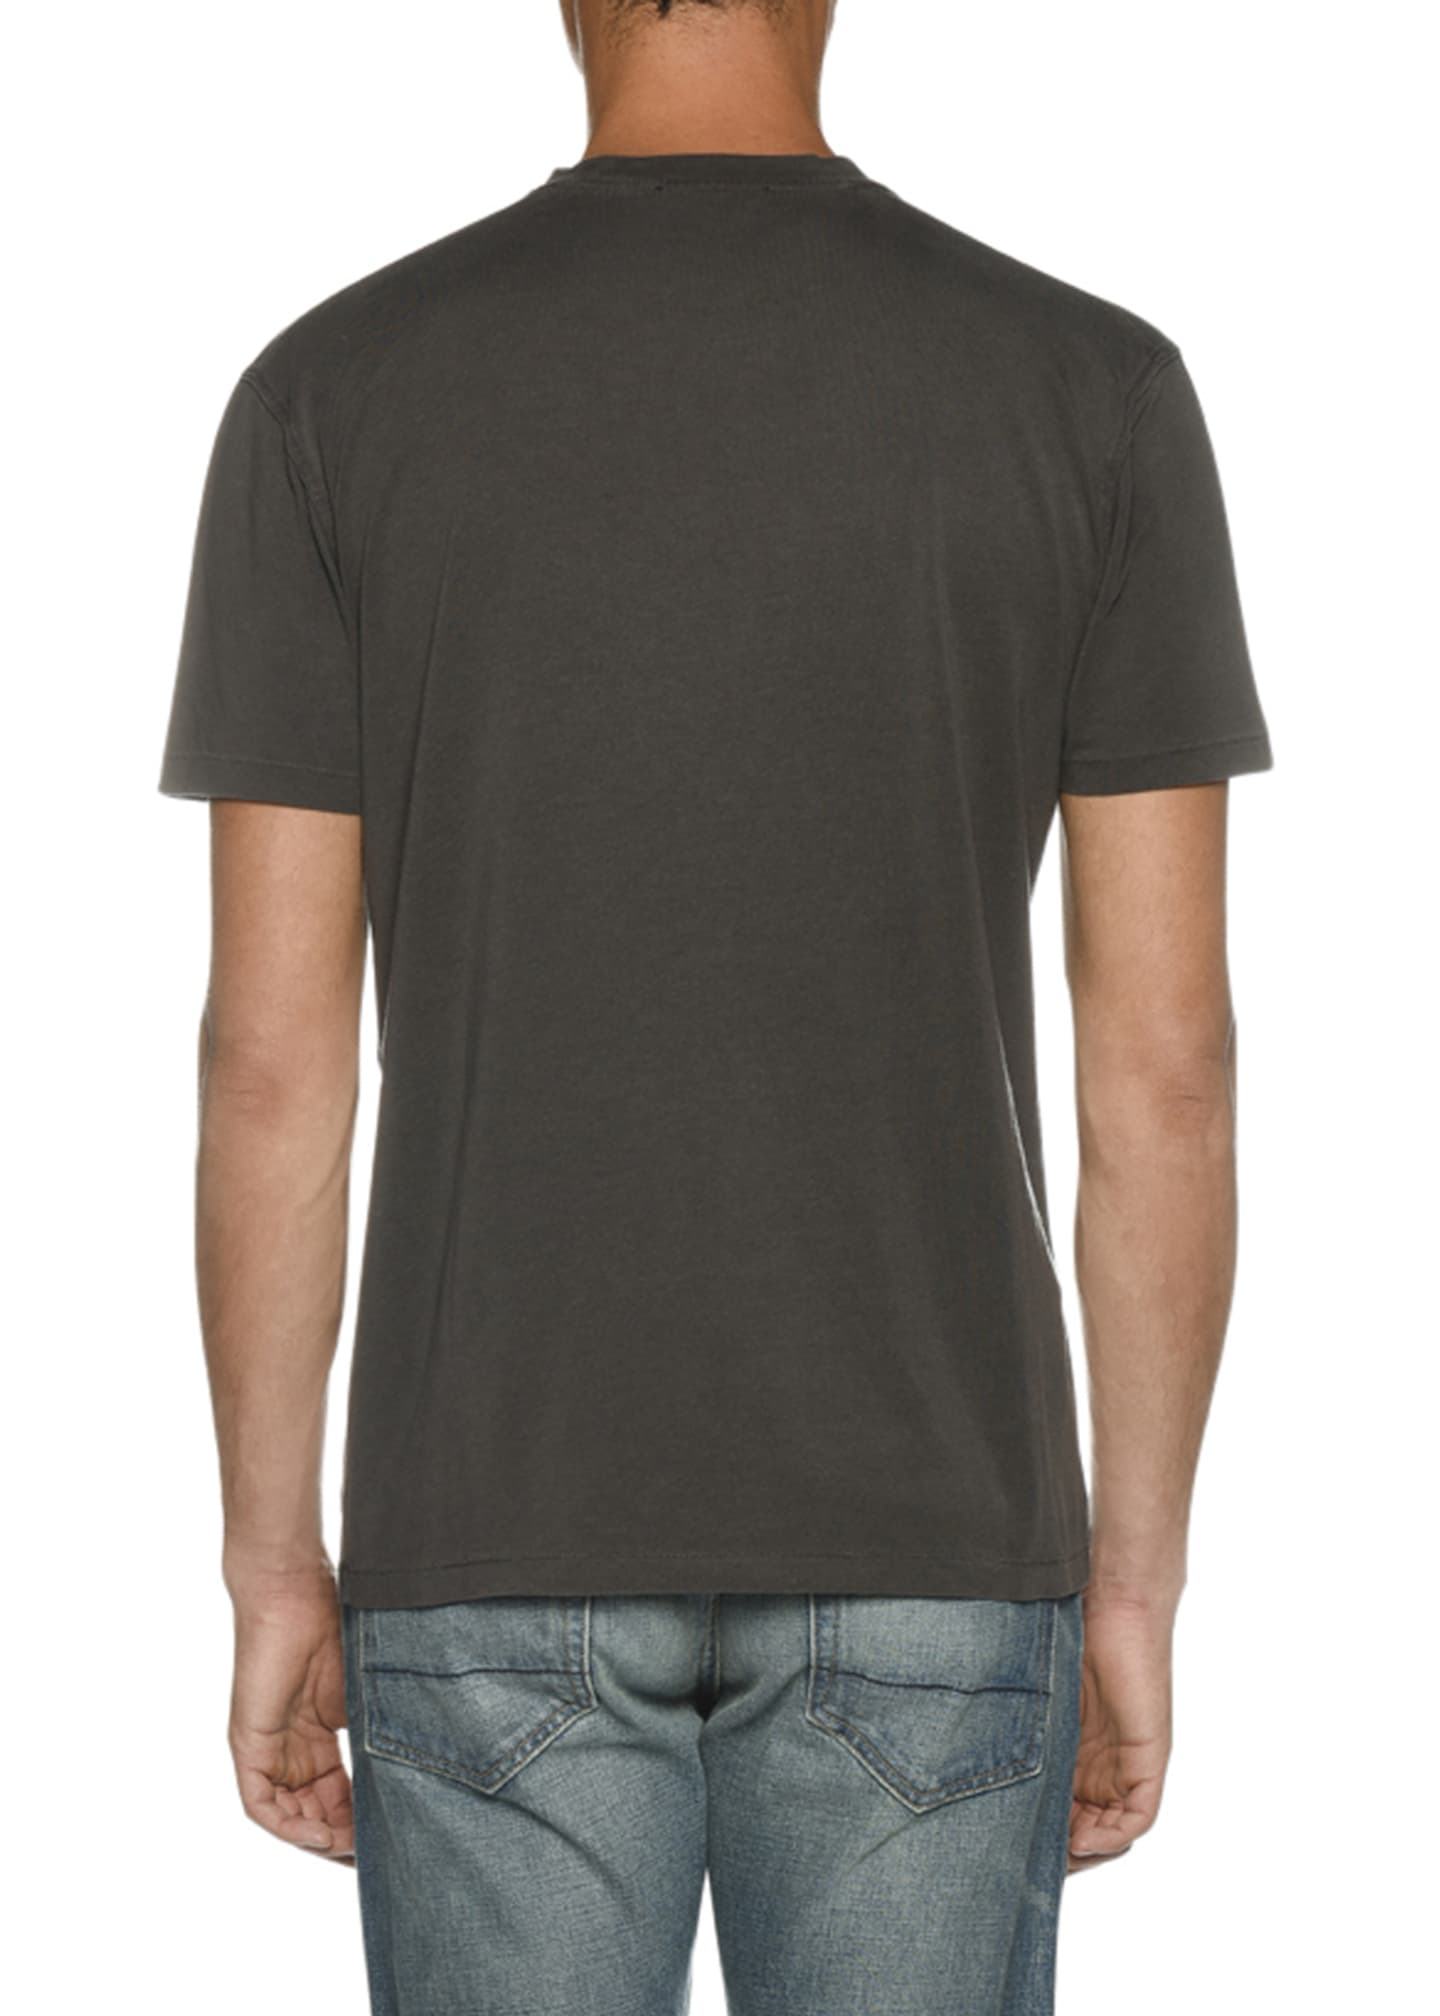 Image 2 of 2: Men's Short-Sleeve Solid T-Shirt